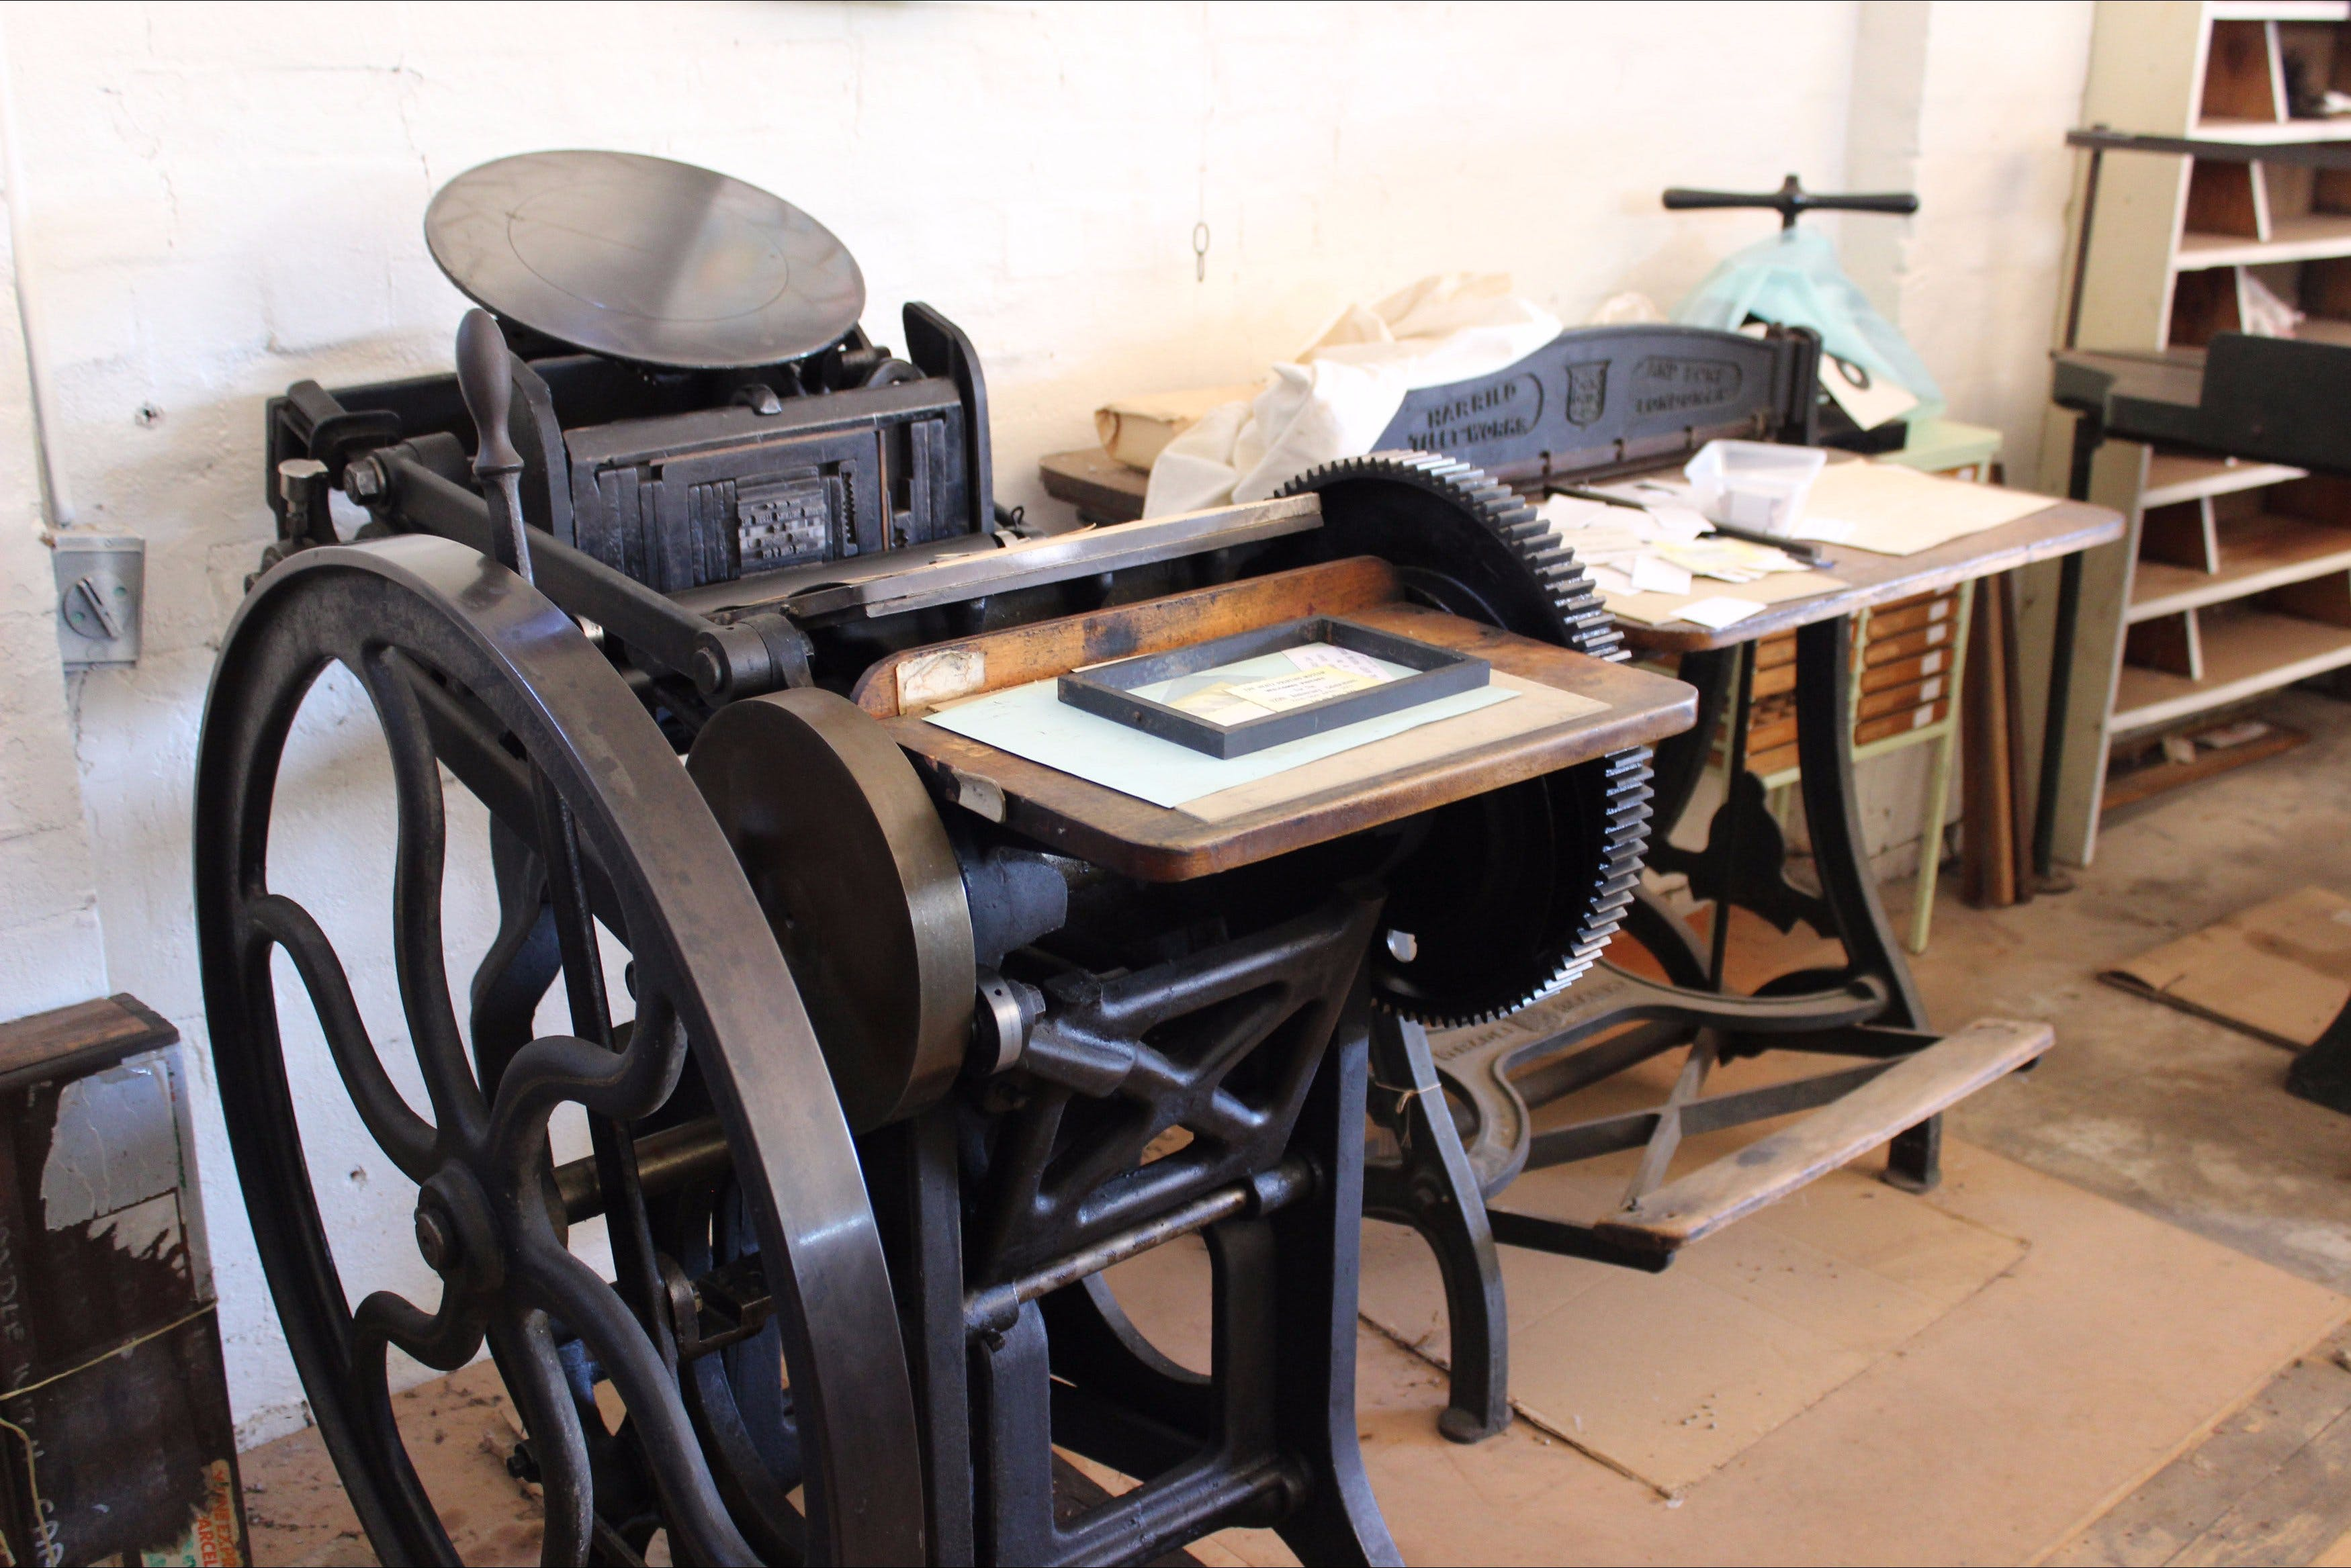 Henty Observer Printing Museum - New South Wales Tourism